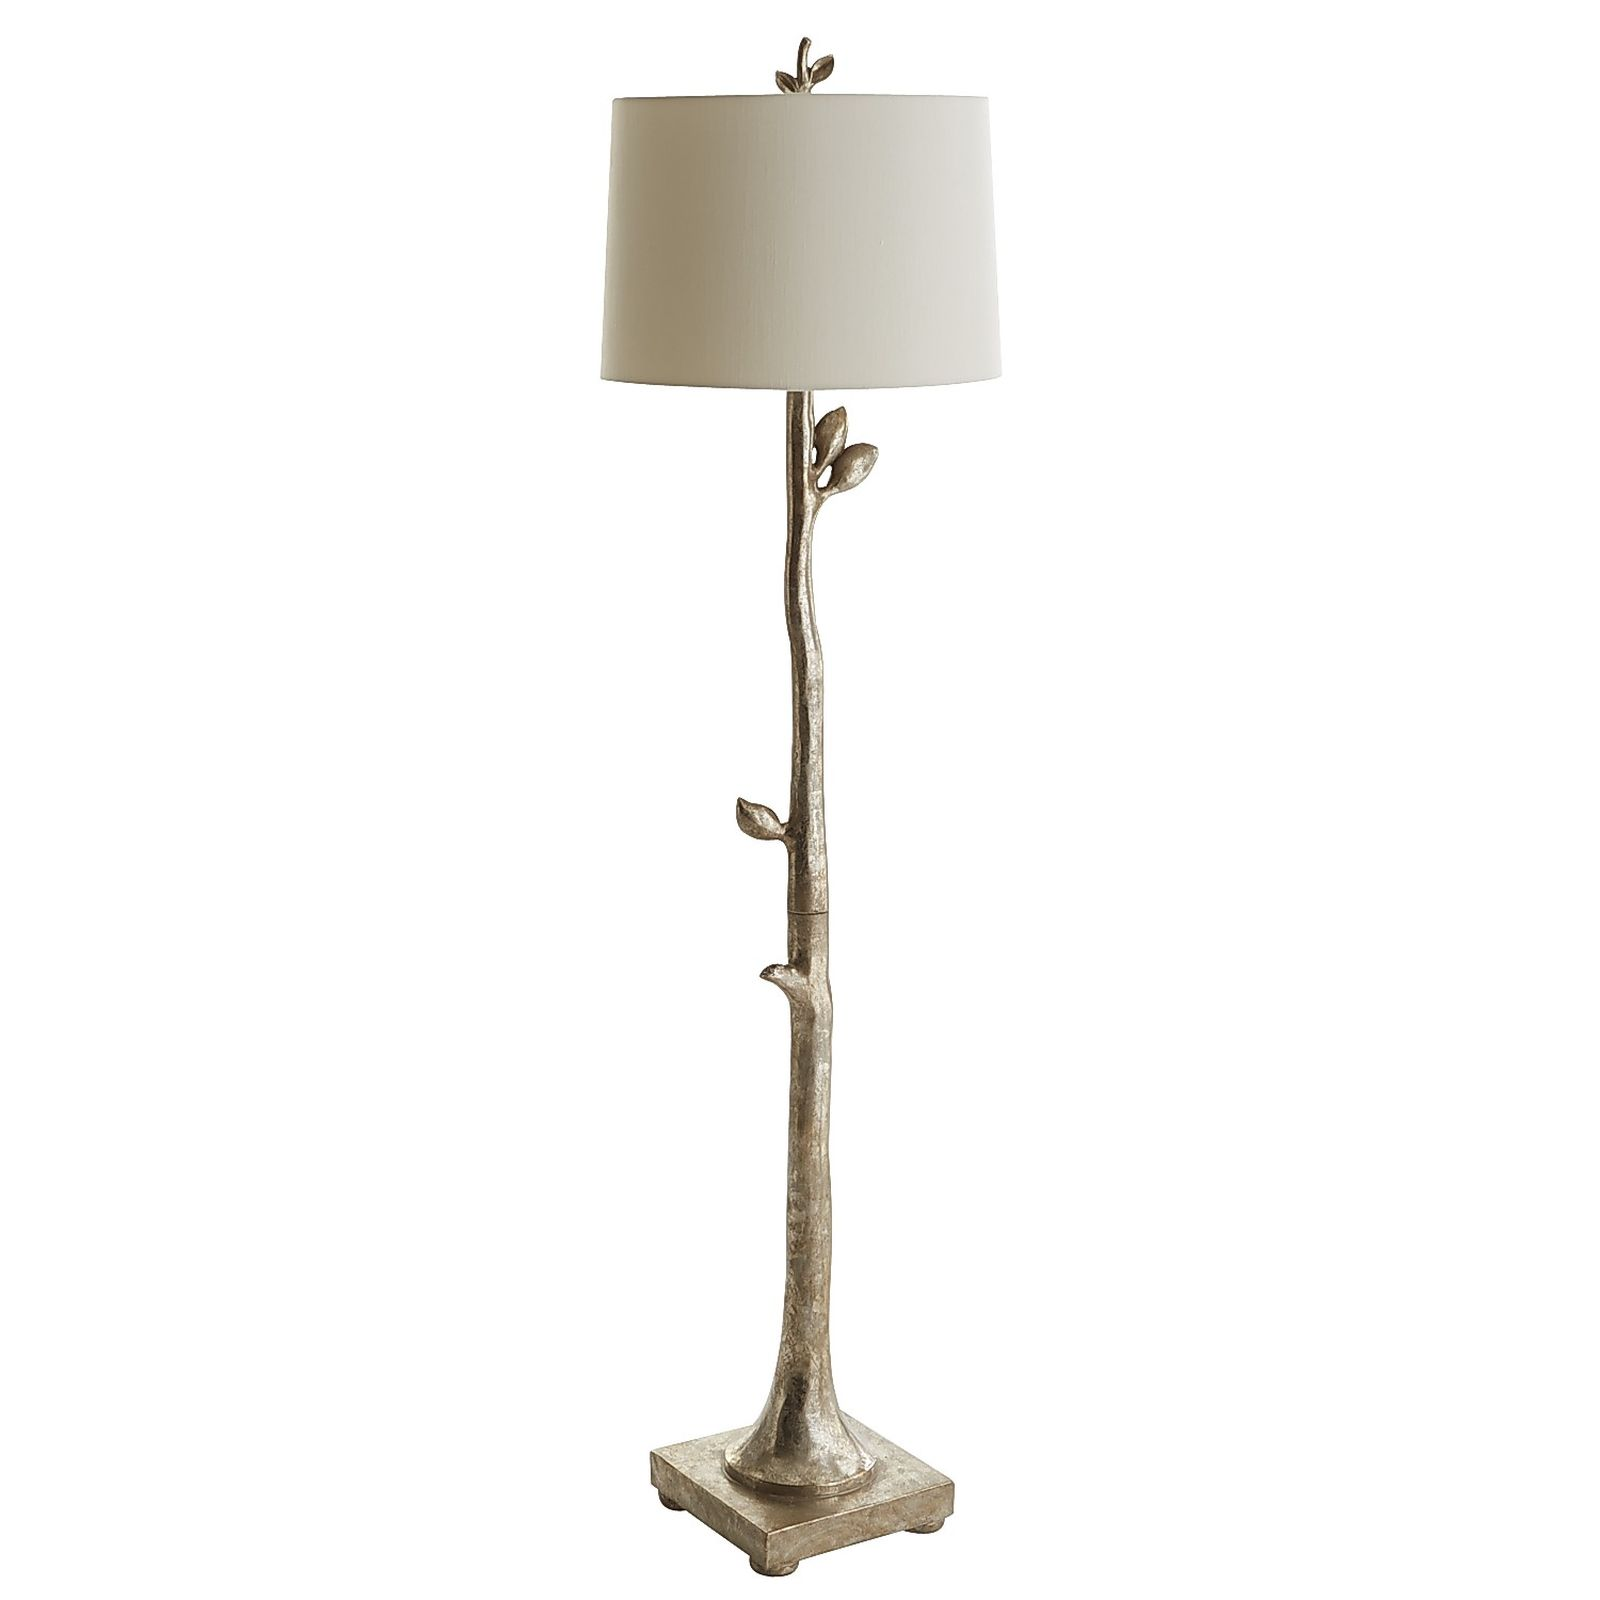 Floor lamps modern 10 tips for choosing warisan lighting for Buy floor lamp online